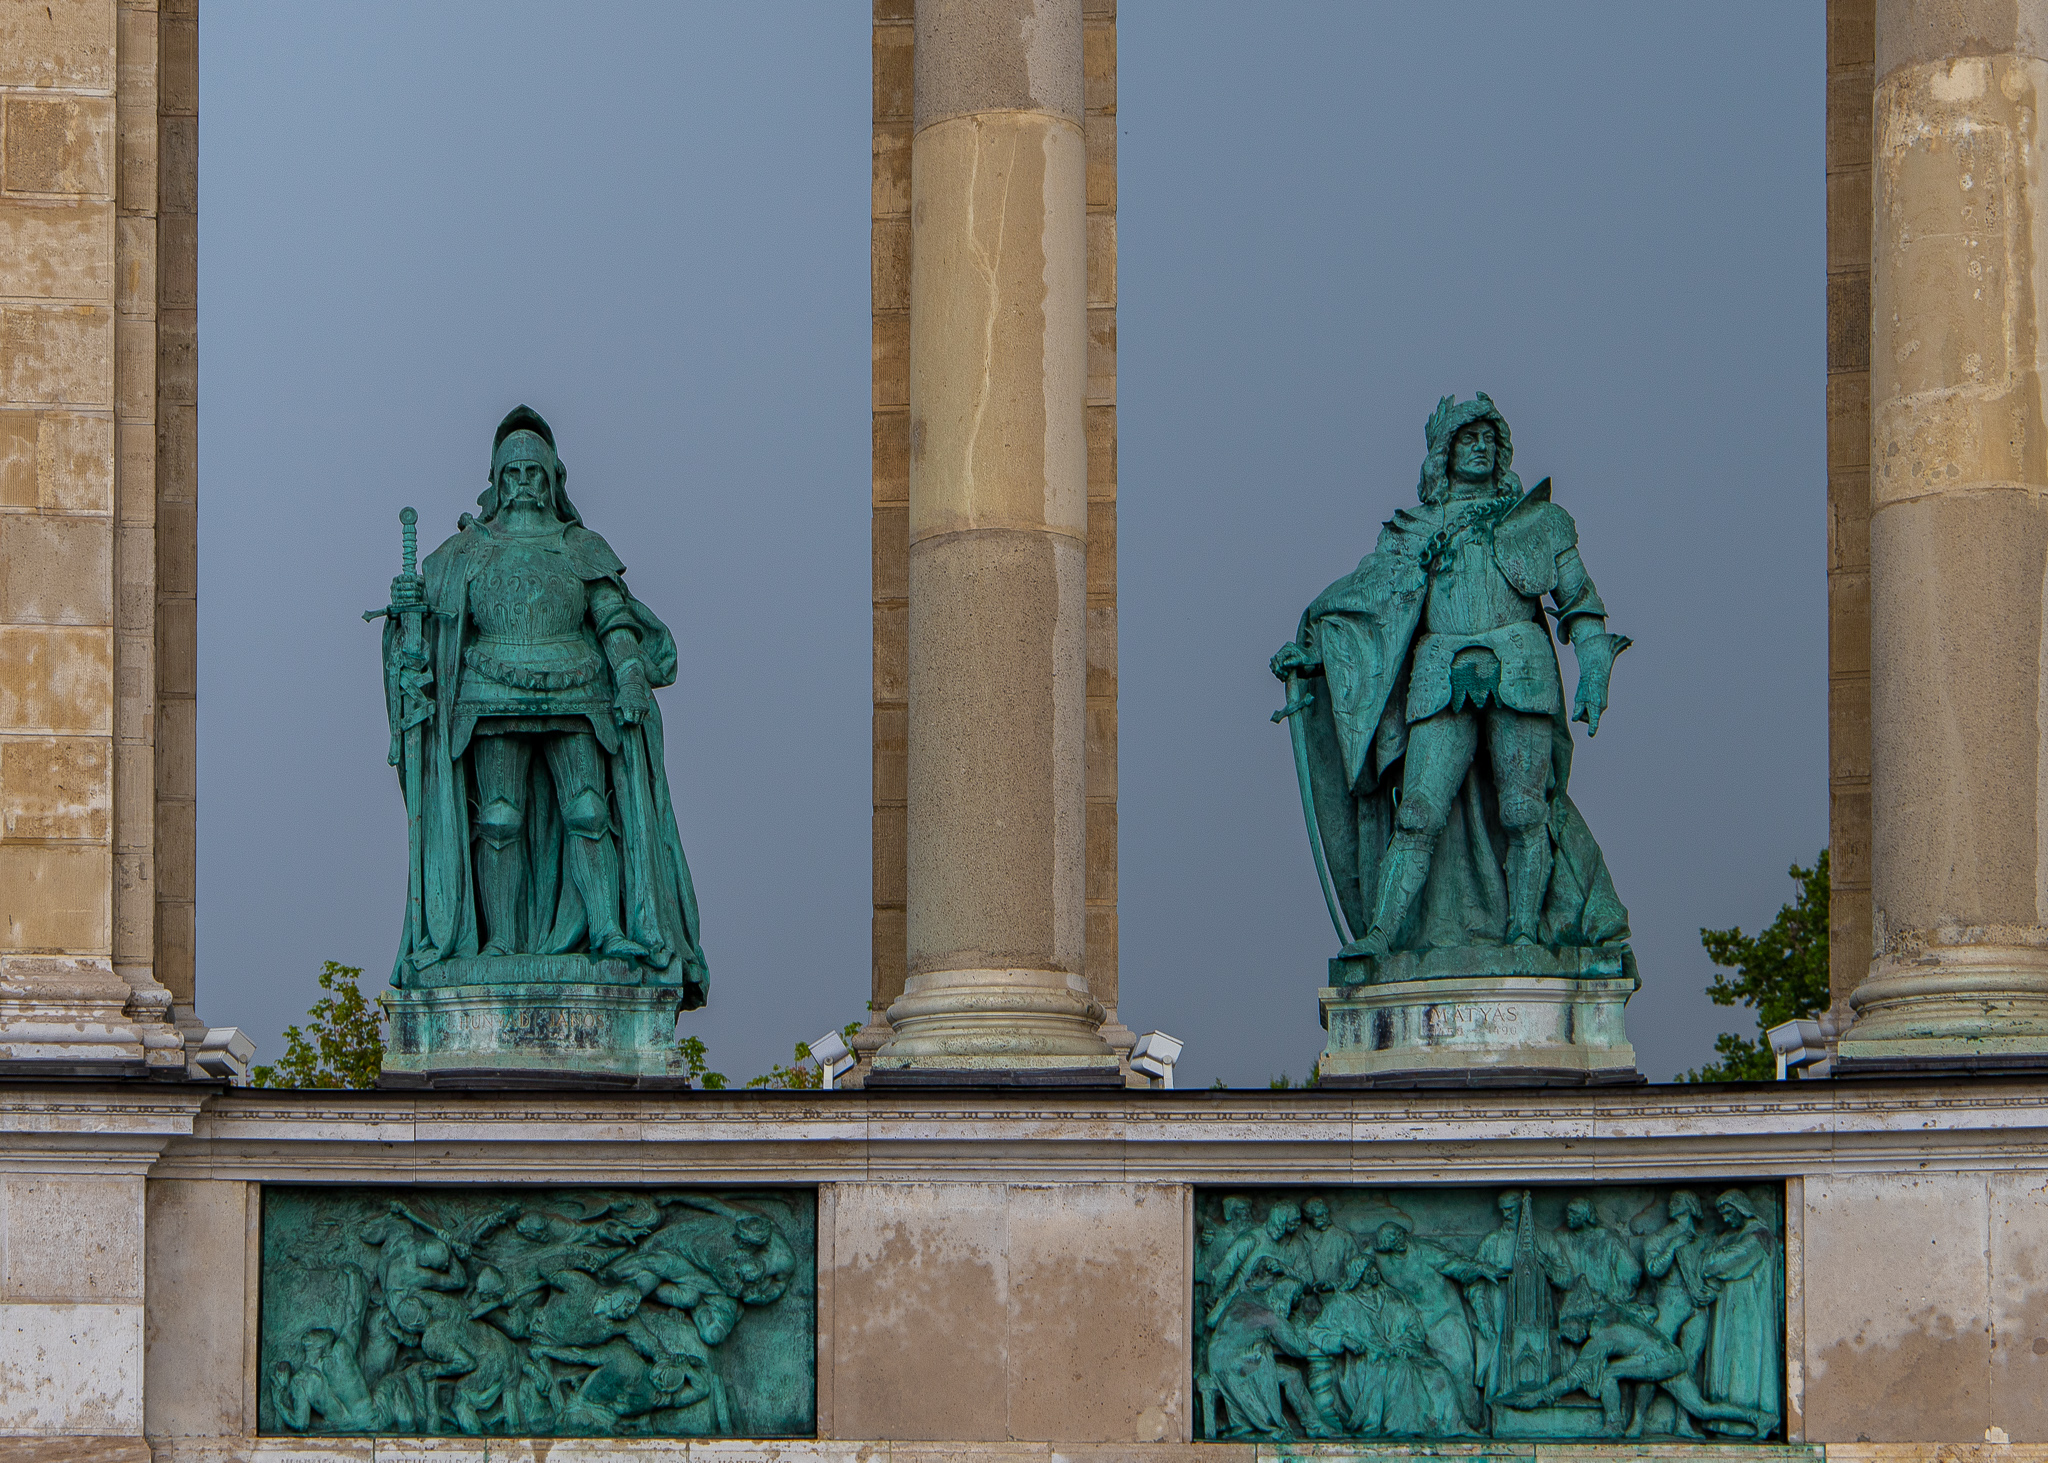 Statues of John Hunyadi (left) above the Siege of Belgrade and King Matthias Corvinus (right) above a scene depicting him with his scholars